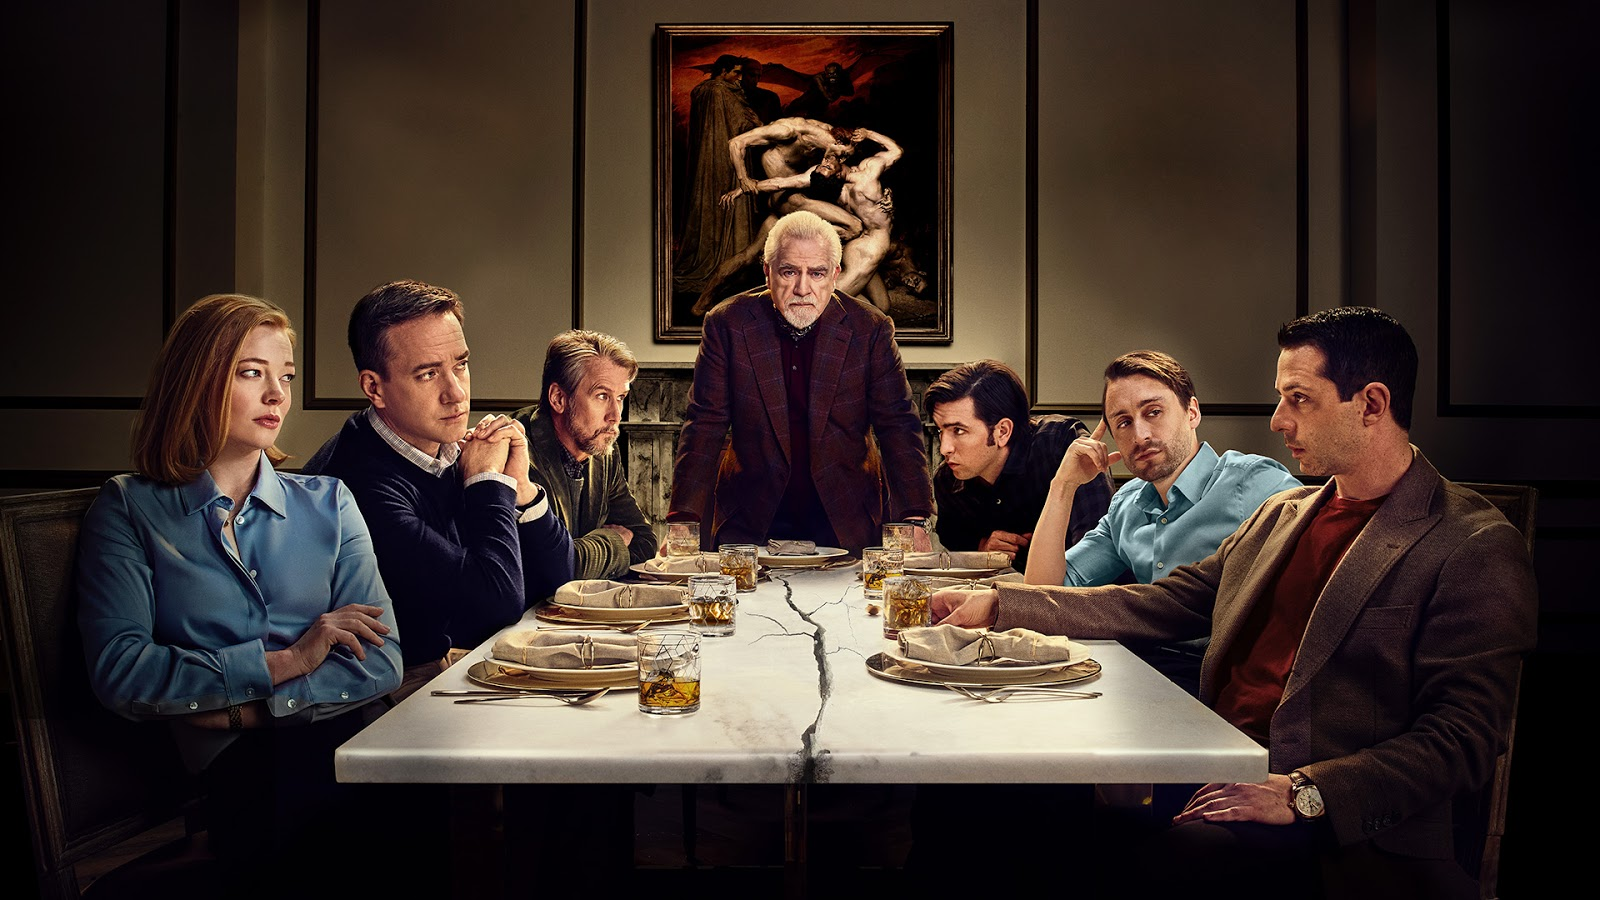 Succession on HBO has the perfect blend of drama and comedy